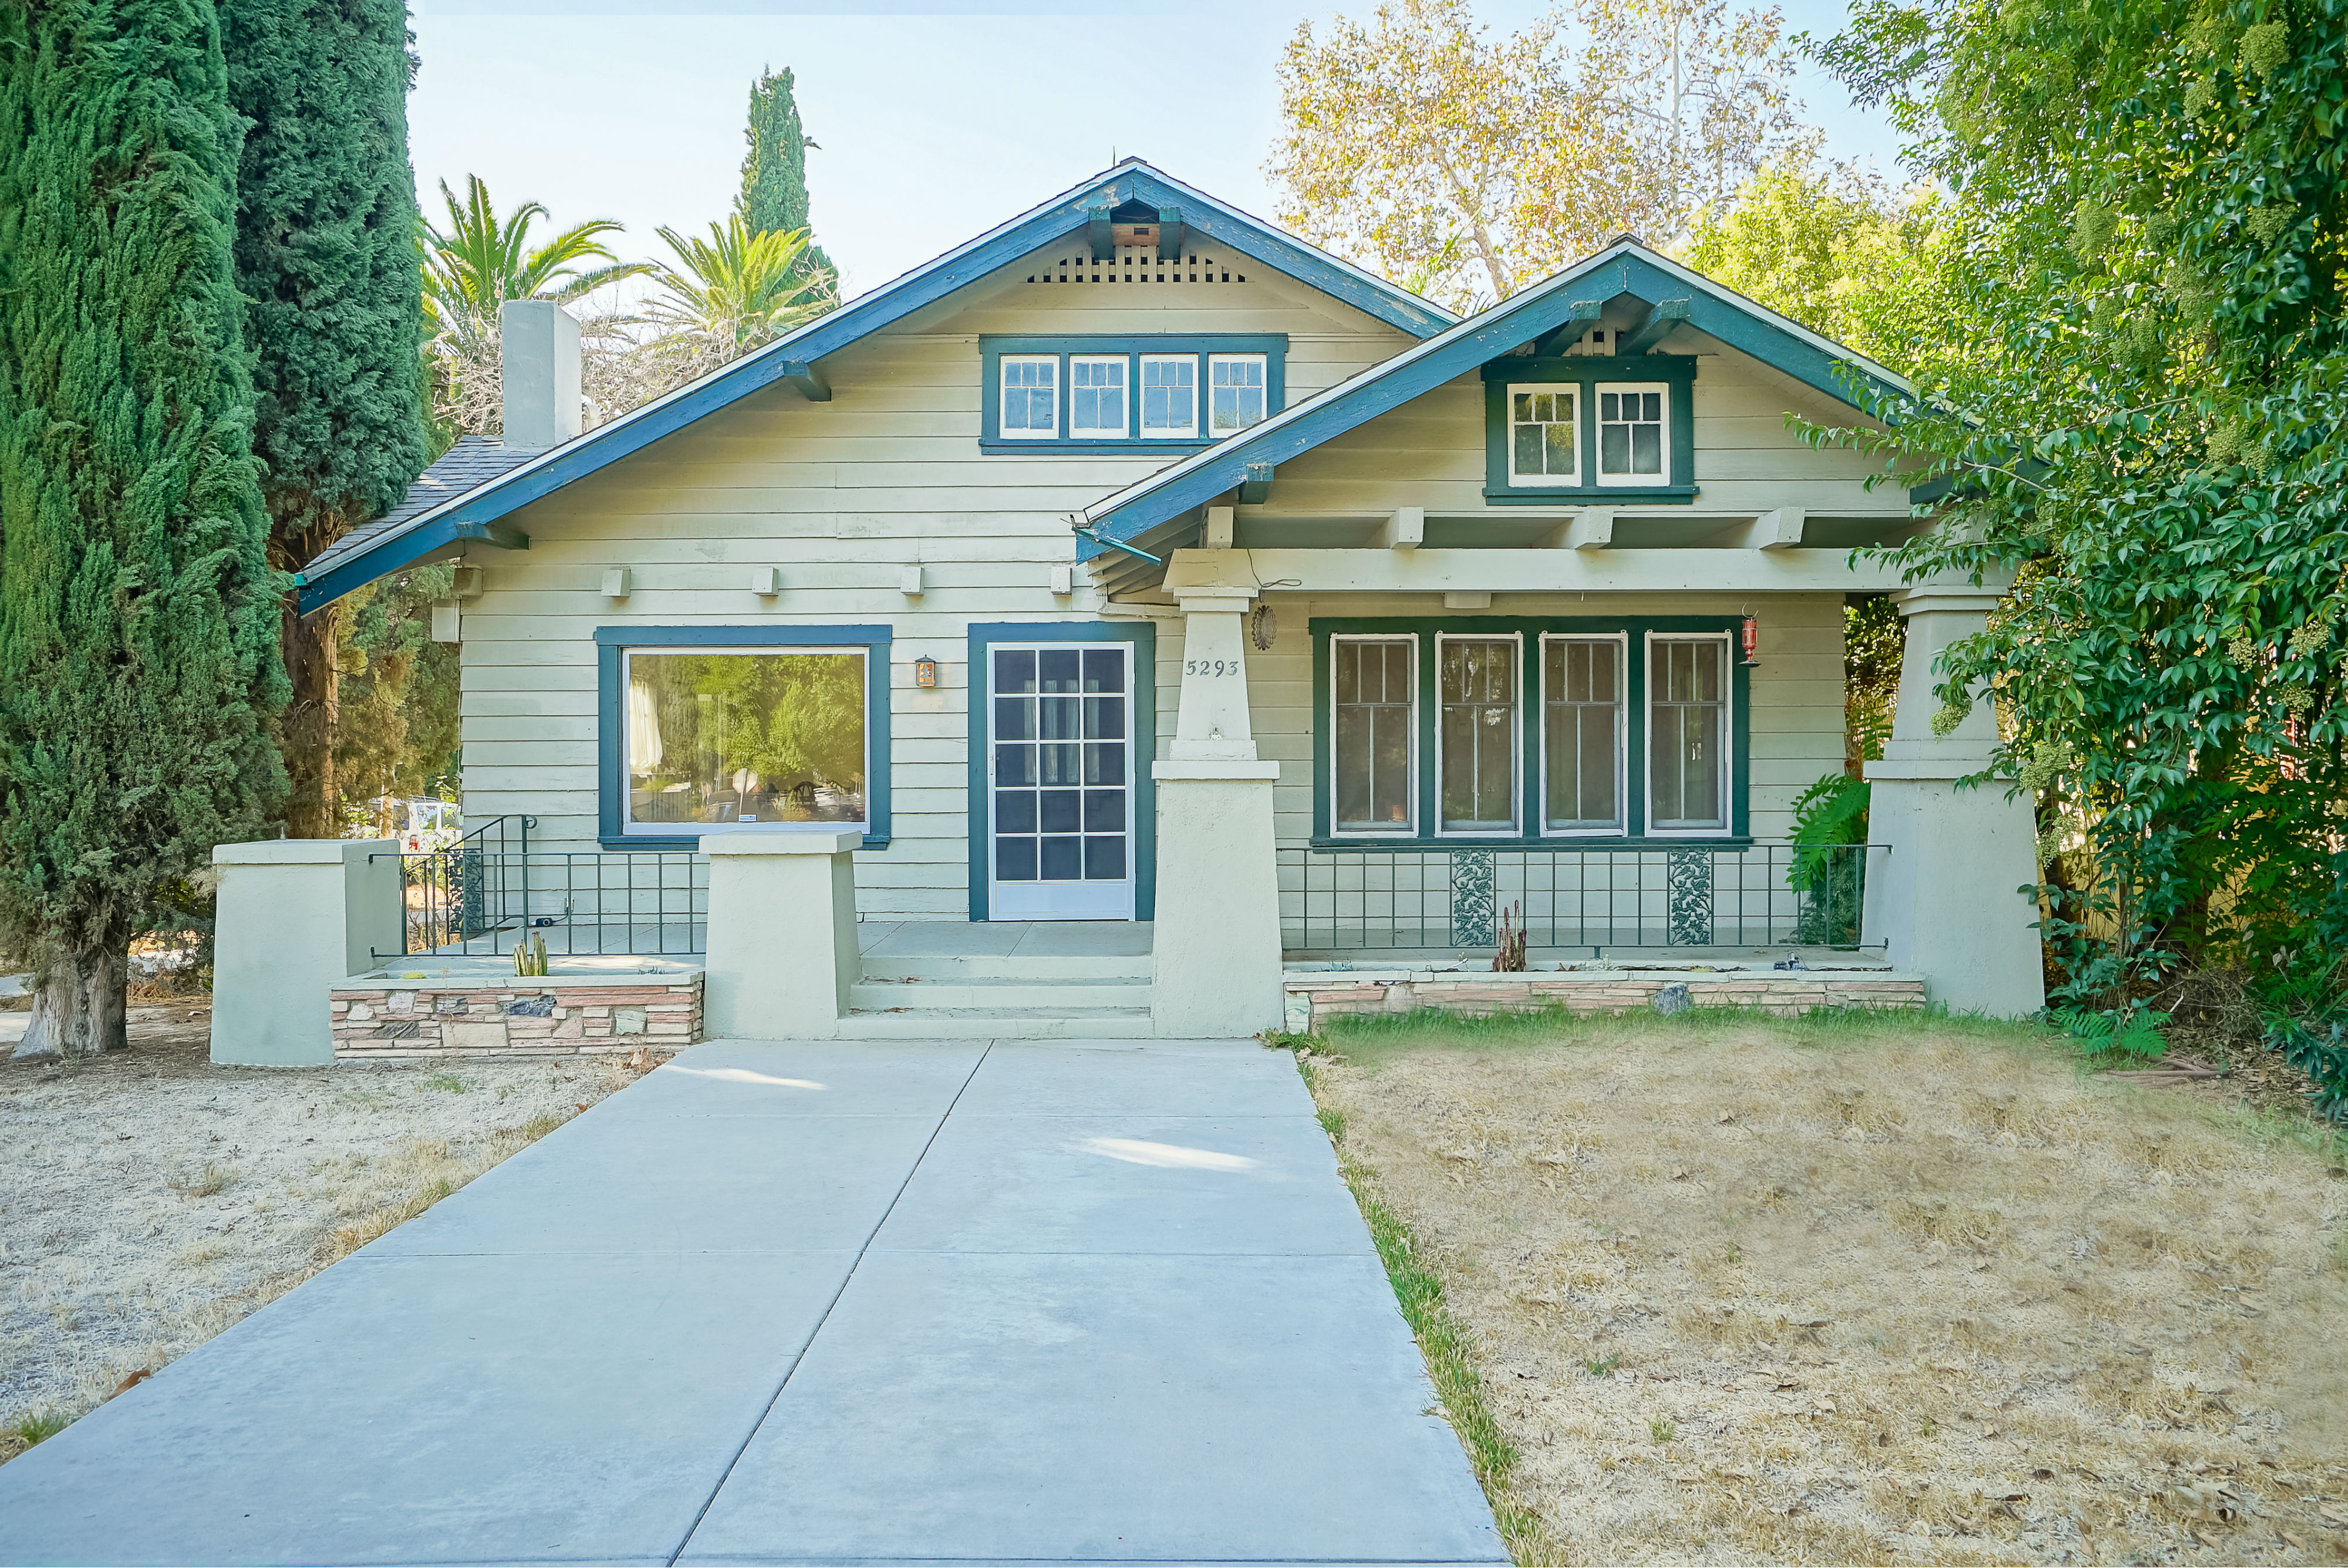 5293 Magnolia Avenue, Riverside, CA 92506 listed by THE SISTER TEAM